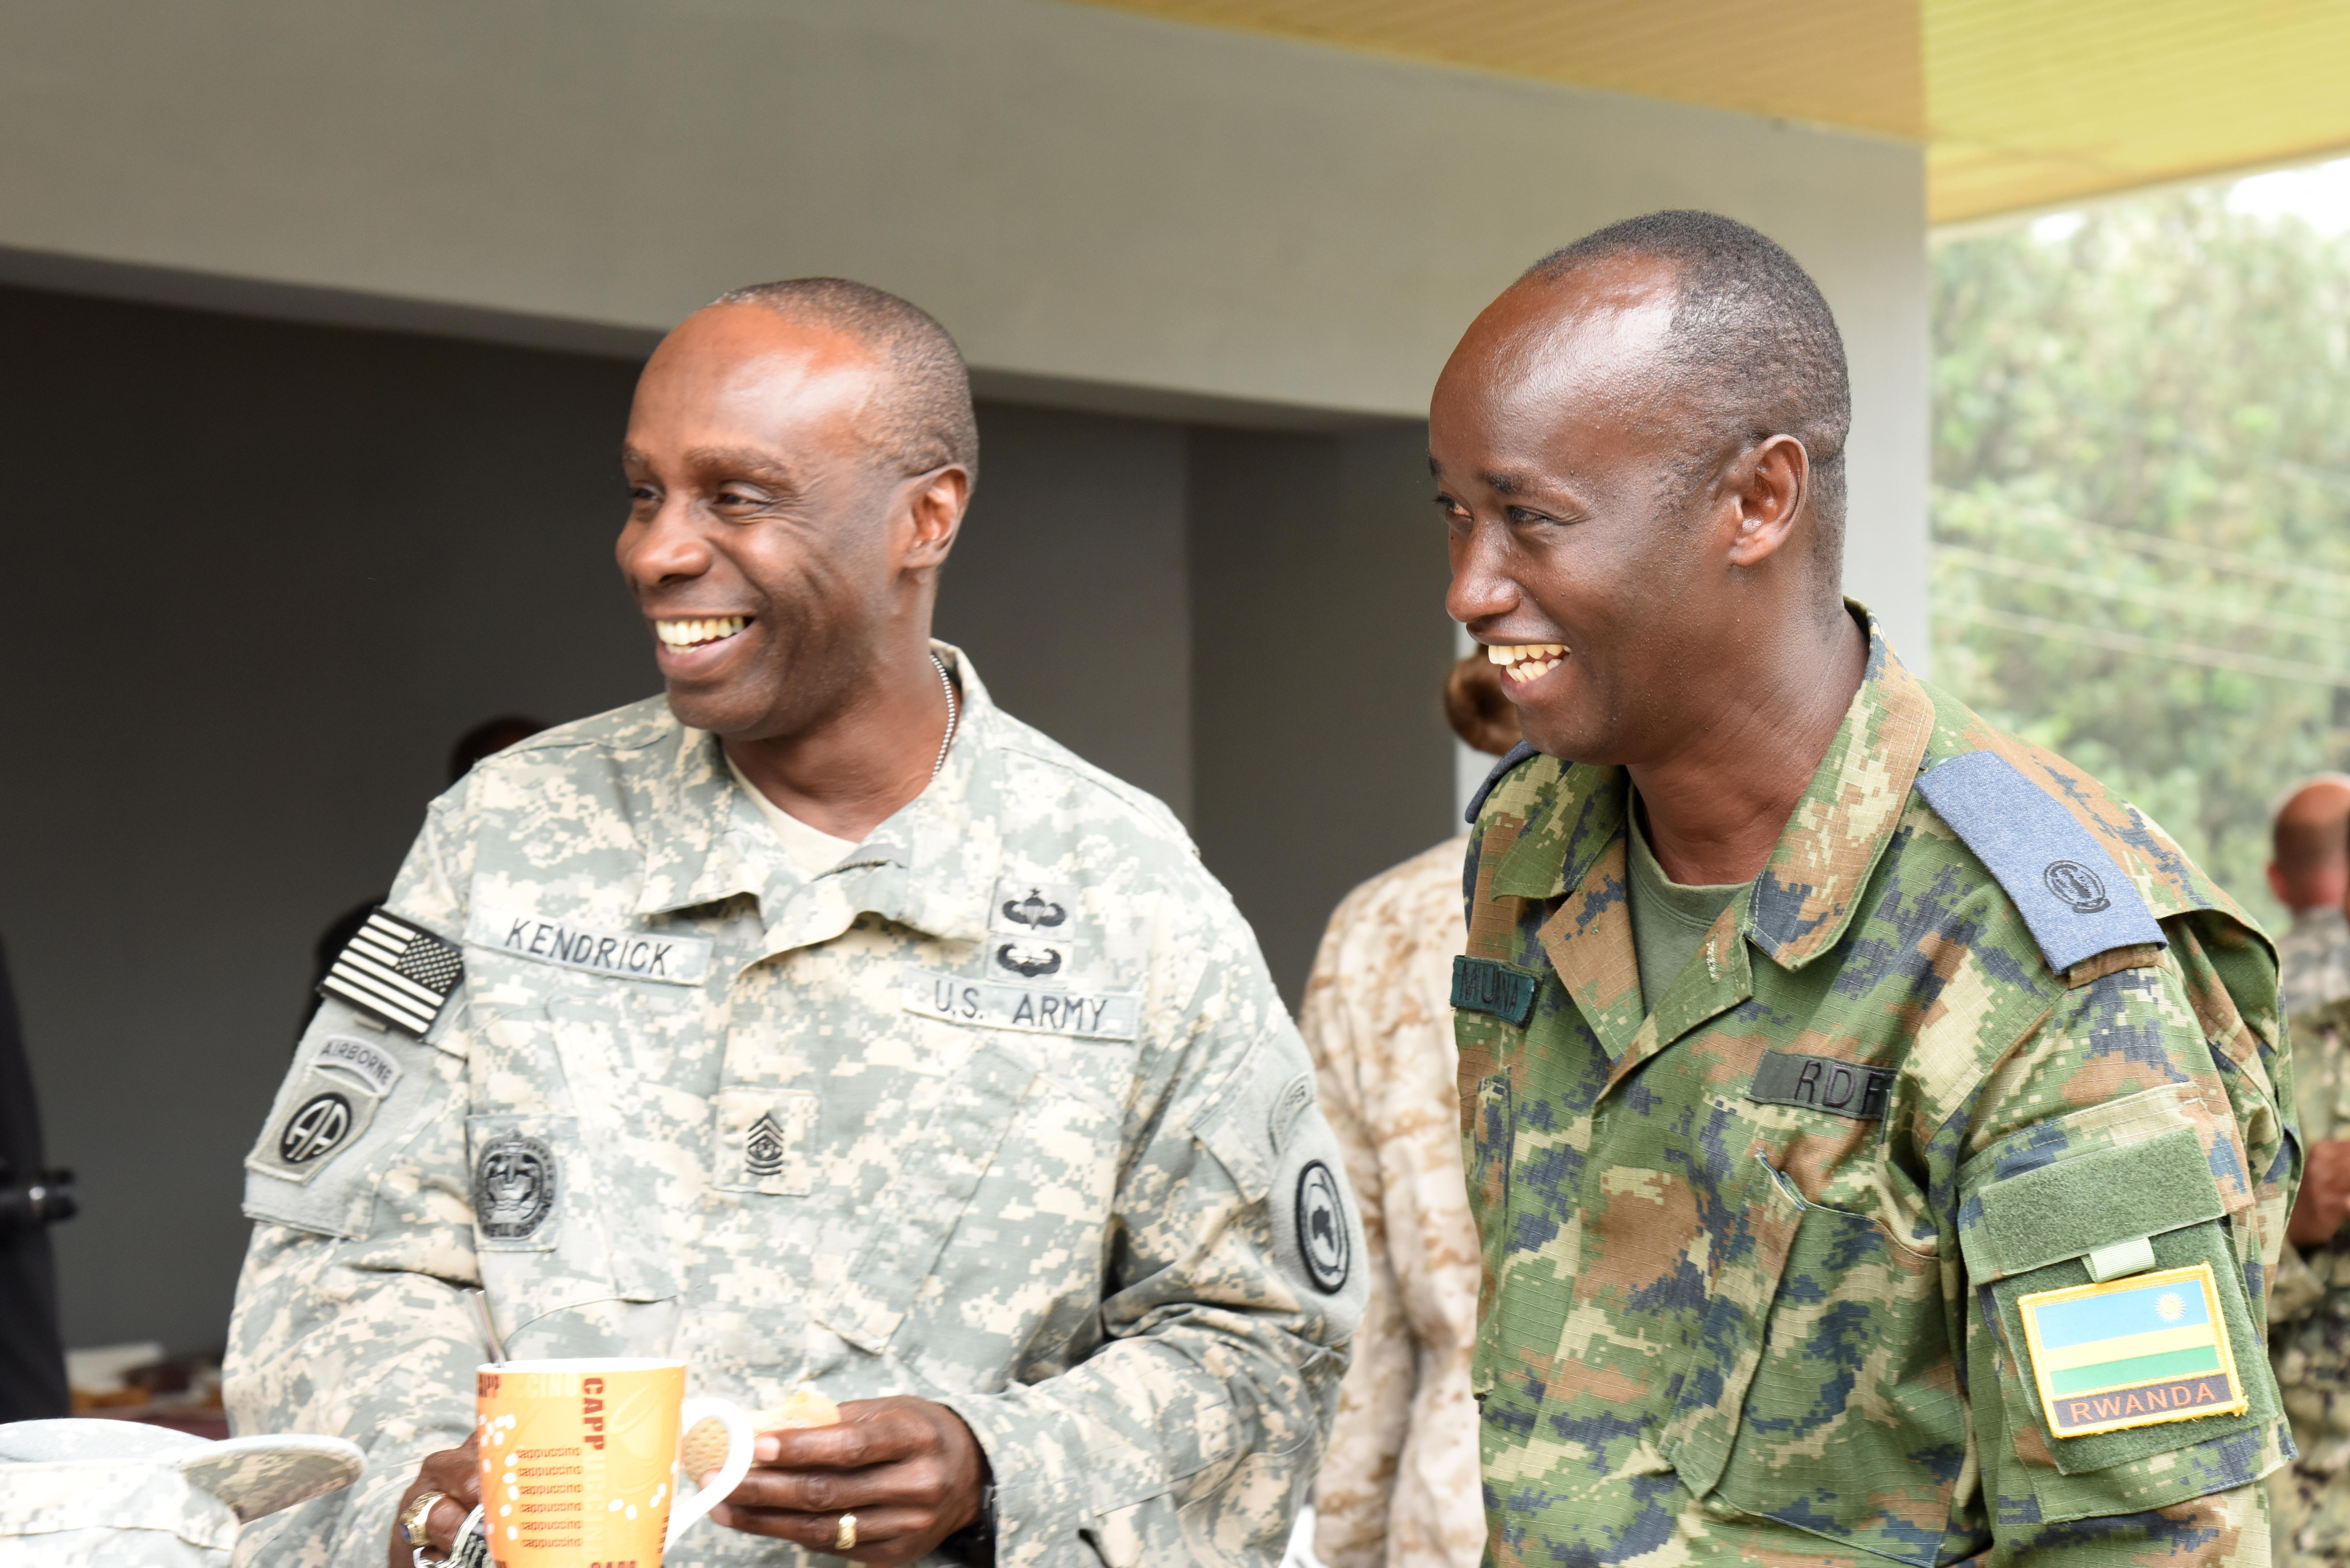 U.S. Army Command Sgt. Maj. Butler Kendrick, Combined Joint Task Force-Horn of Africa senior enlisted leader, shares a laugh with Rwandan Defense Force Air Force Maj. Jean Paul Munana, Combat Battalion squadron commander, at the RDF Engineering Brigade Headquarters near Kigali, Rwanda, Dec. 15, 2015. CJTF-HOA members socialized with RDF members during a tea break from base camp planning instruction. (U.S. Air Force photo by Staff Sgt. Victoria Sneed)